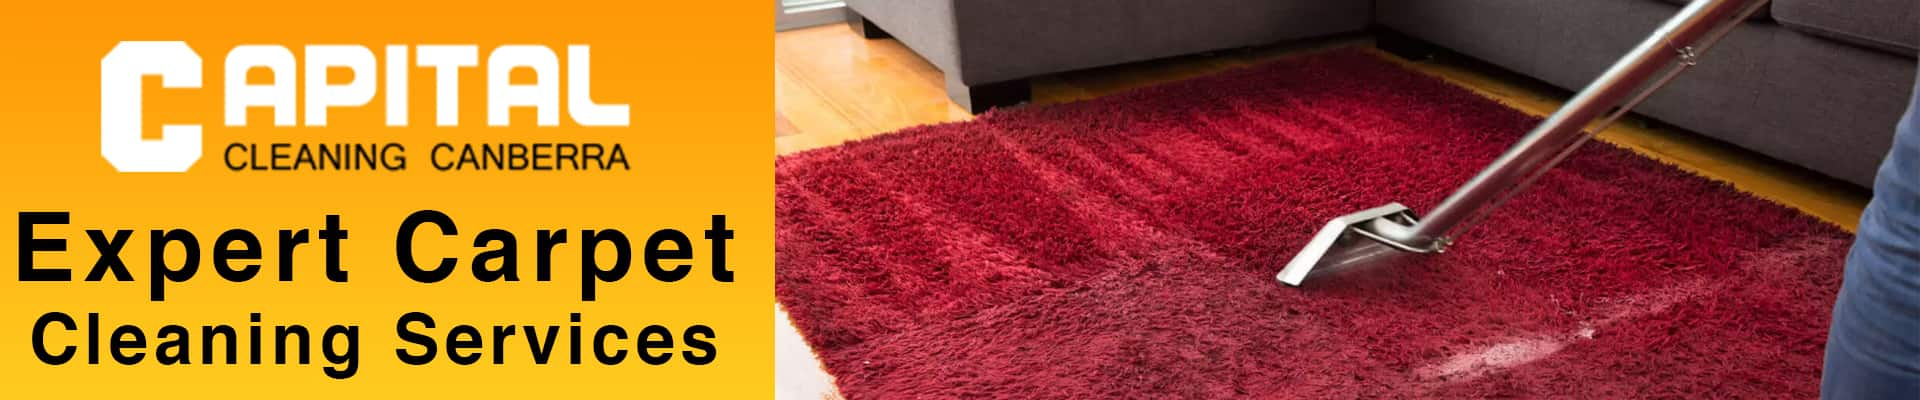 Expert Carpet Cleaning Services Rossi